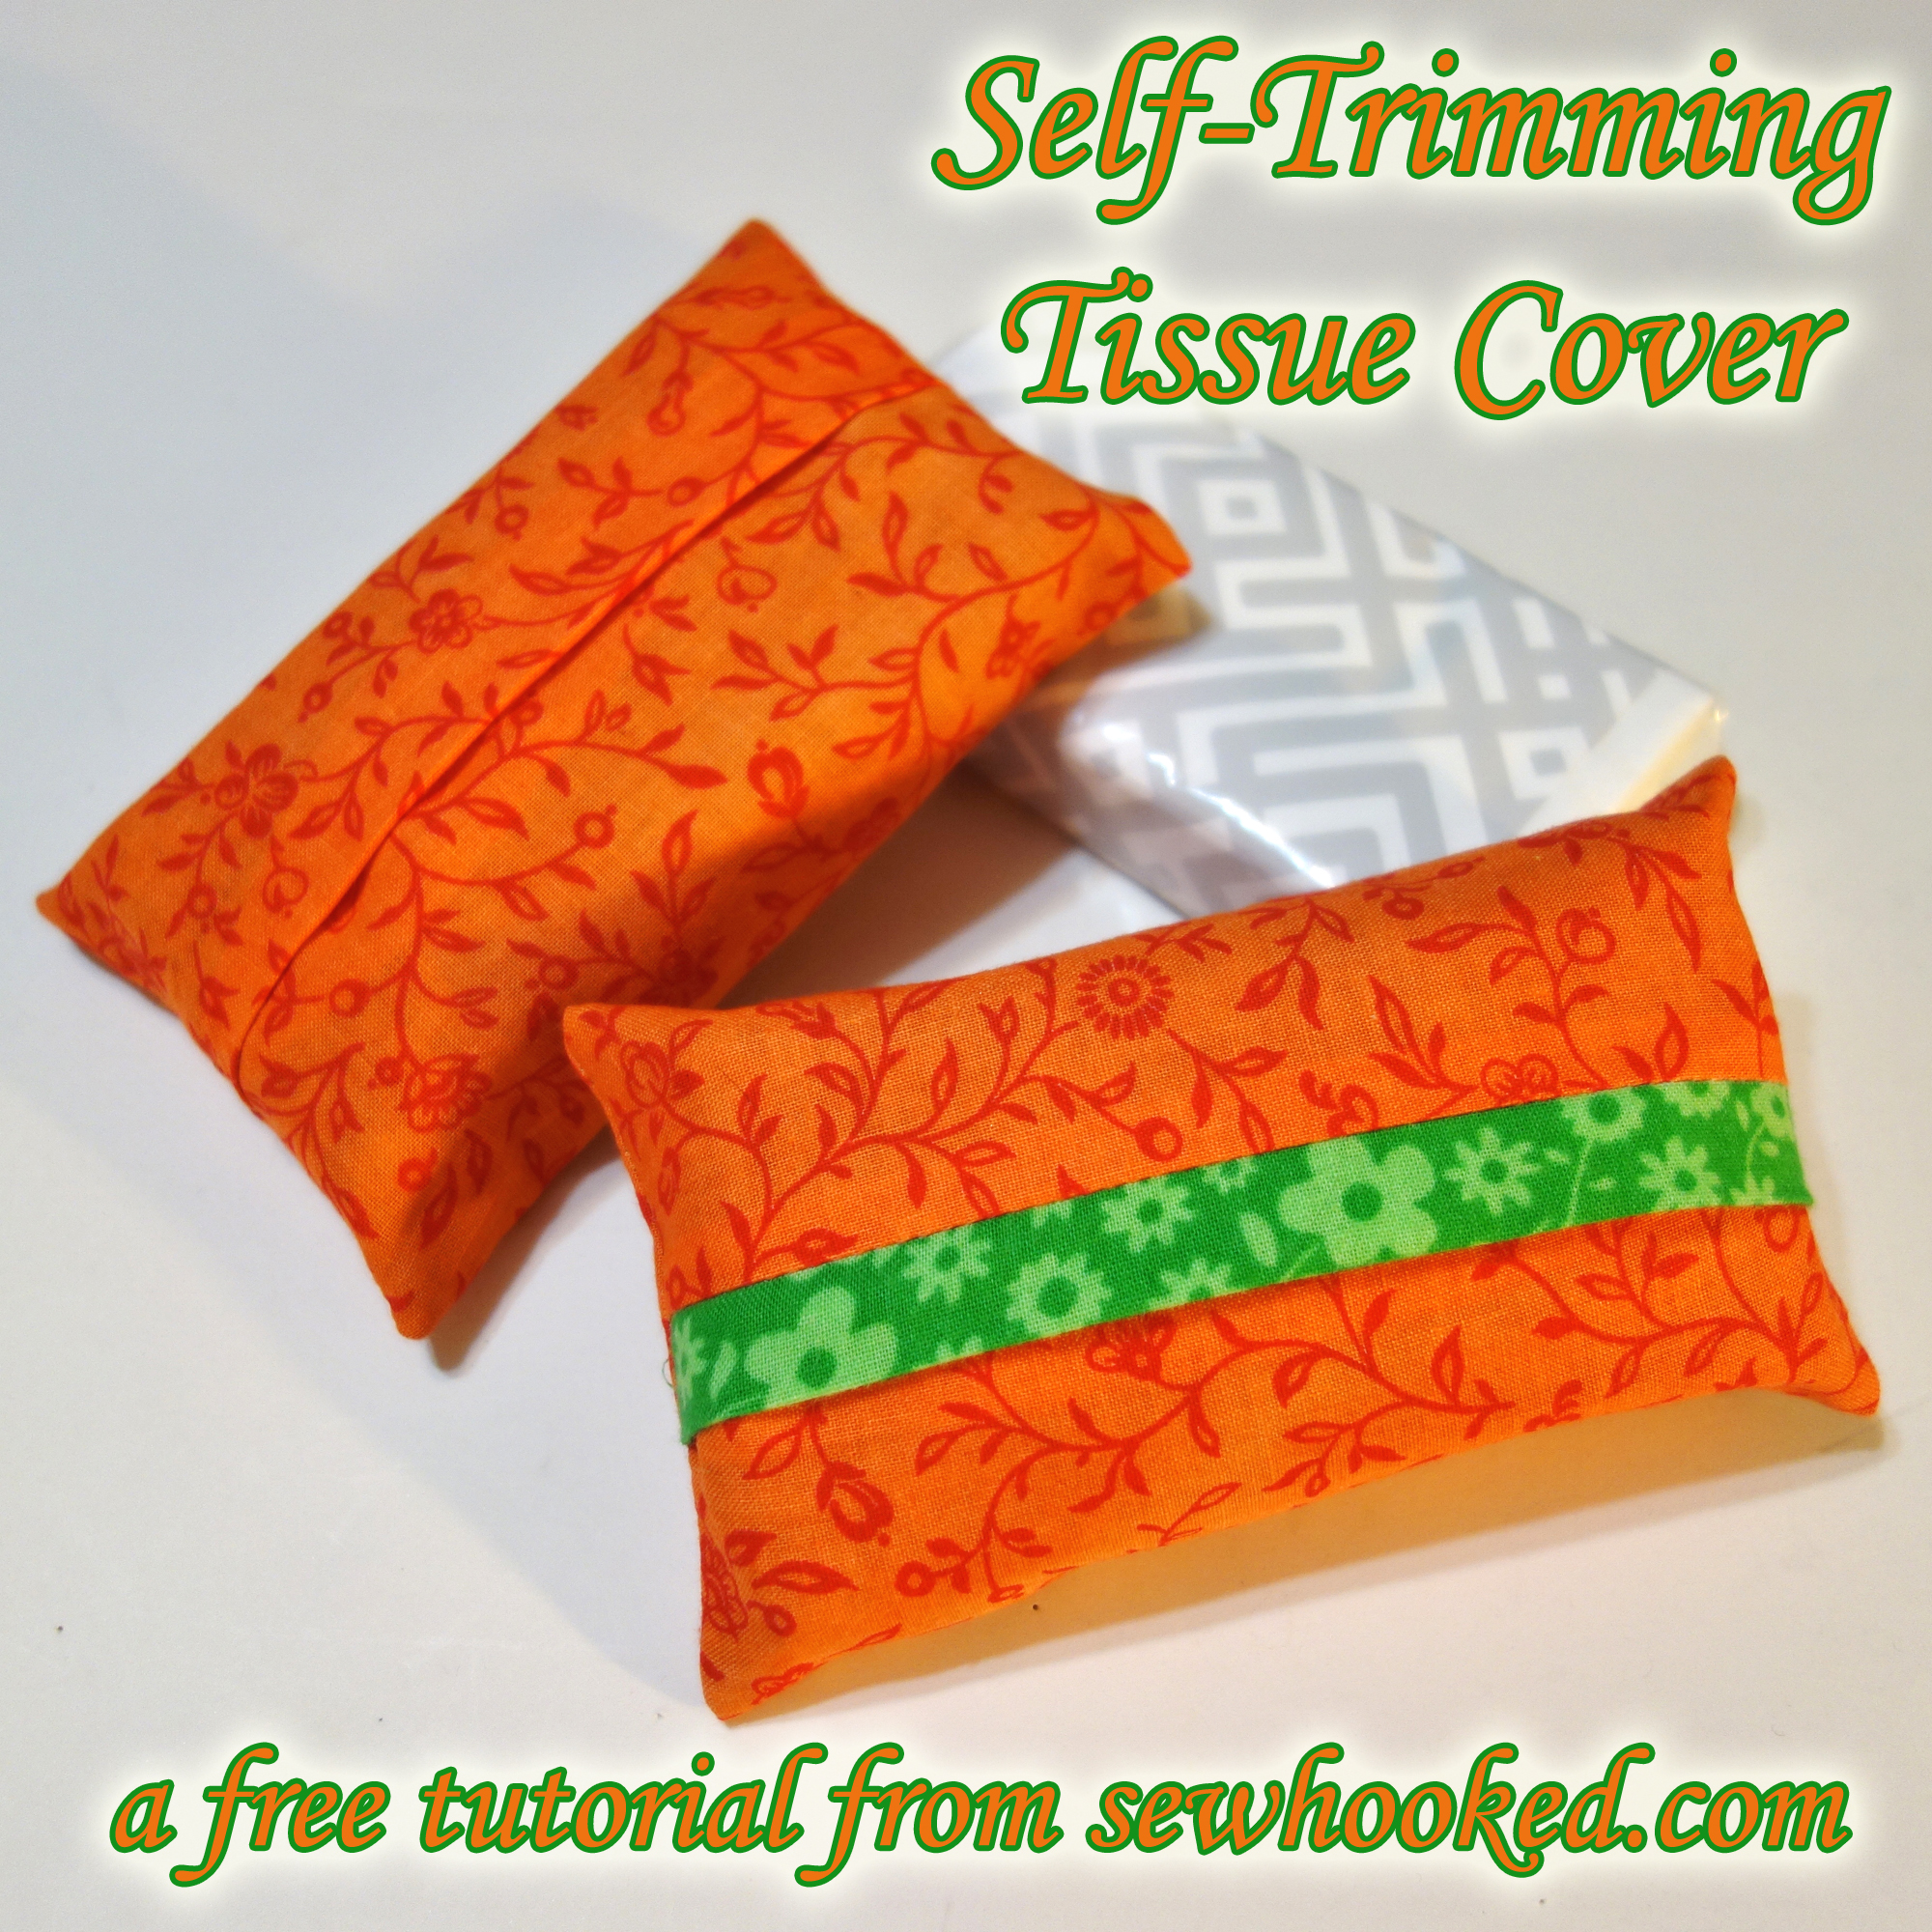 Tissue Tutorial 2017 03 for sewhooked - TITLE.jpg